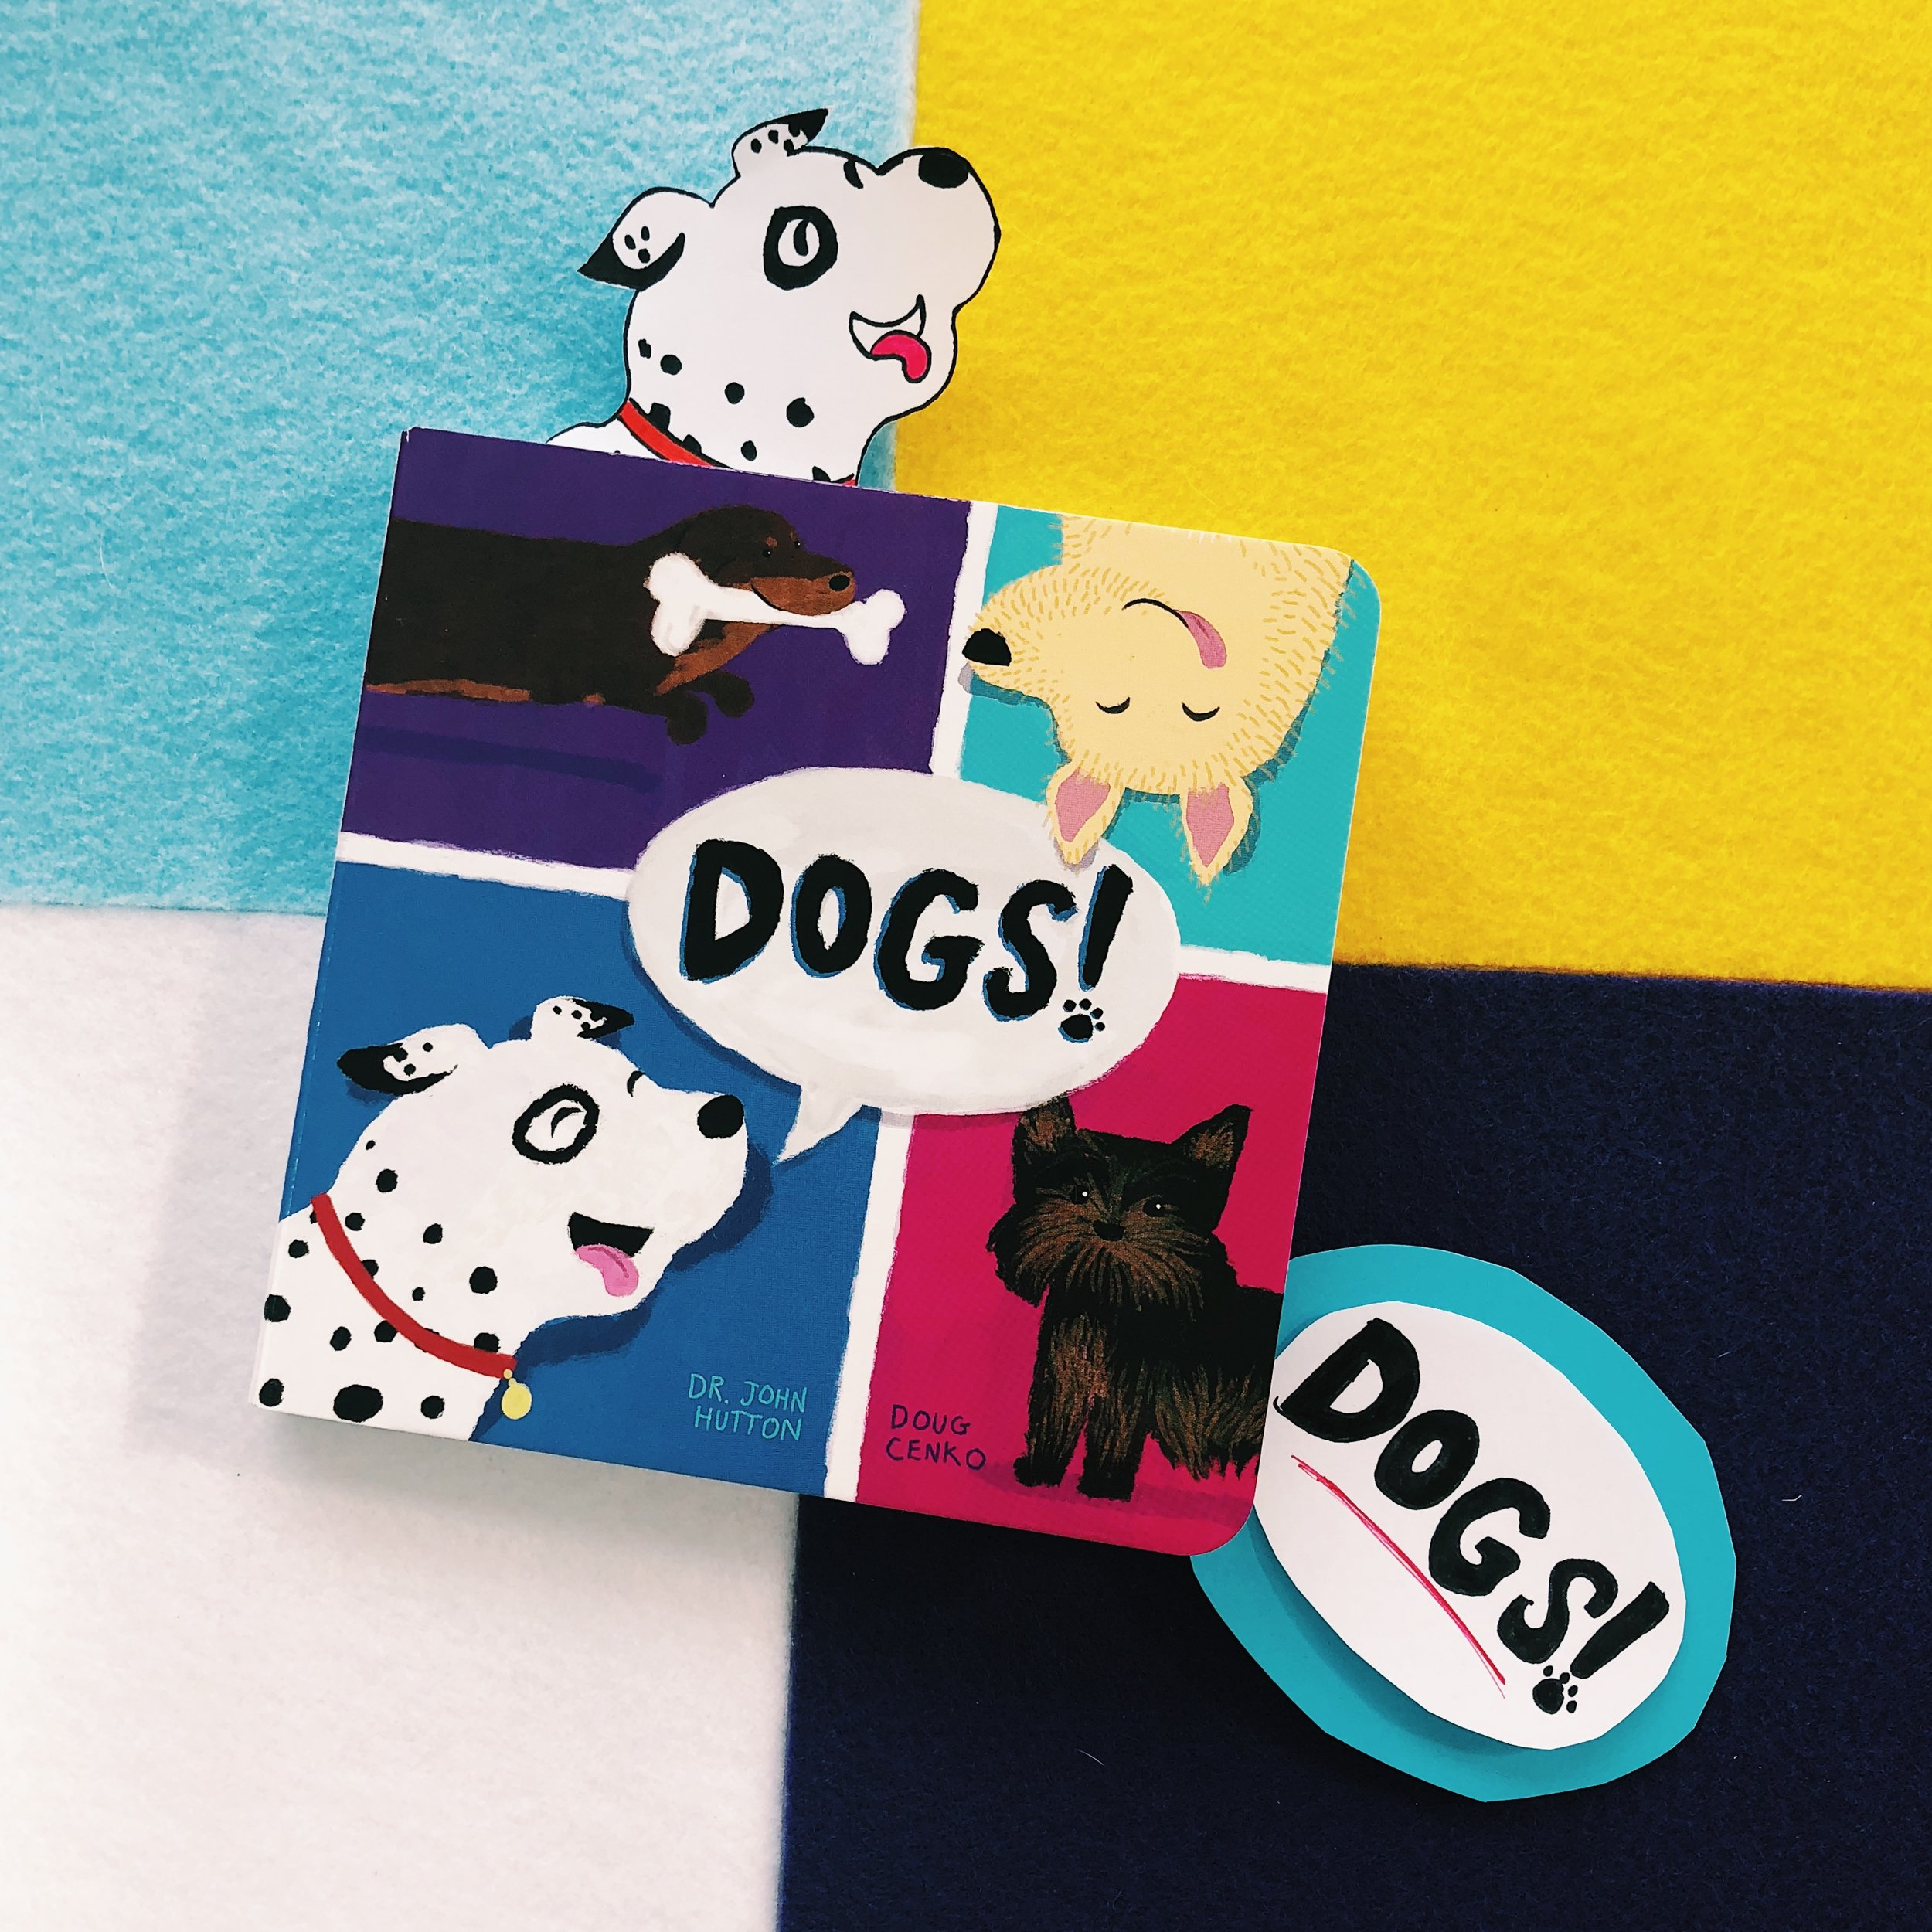 Dogs!   written by Dr. John Hutton and illustrated by Doug Cenko